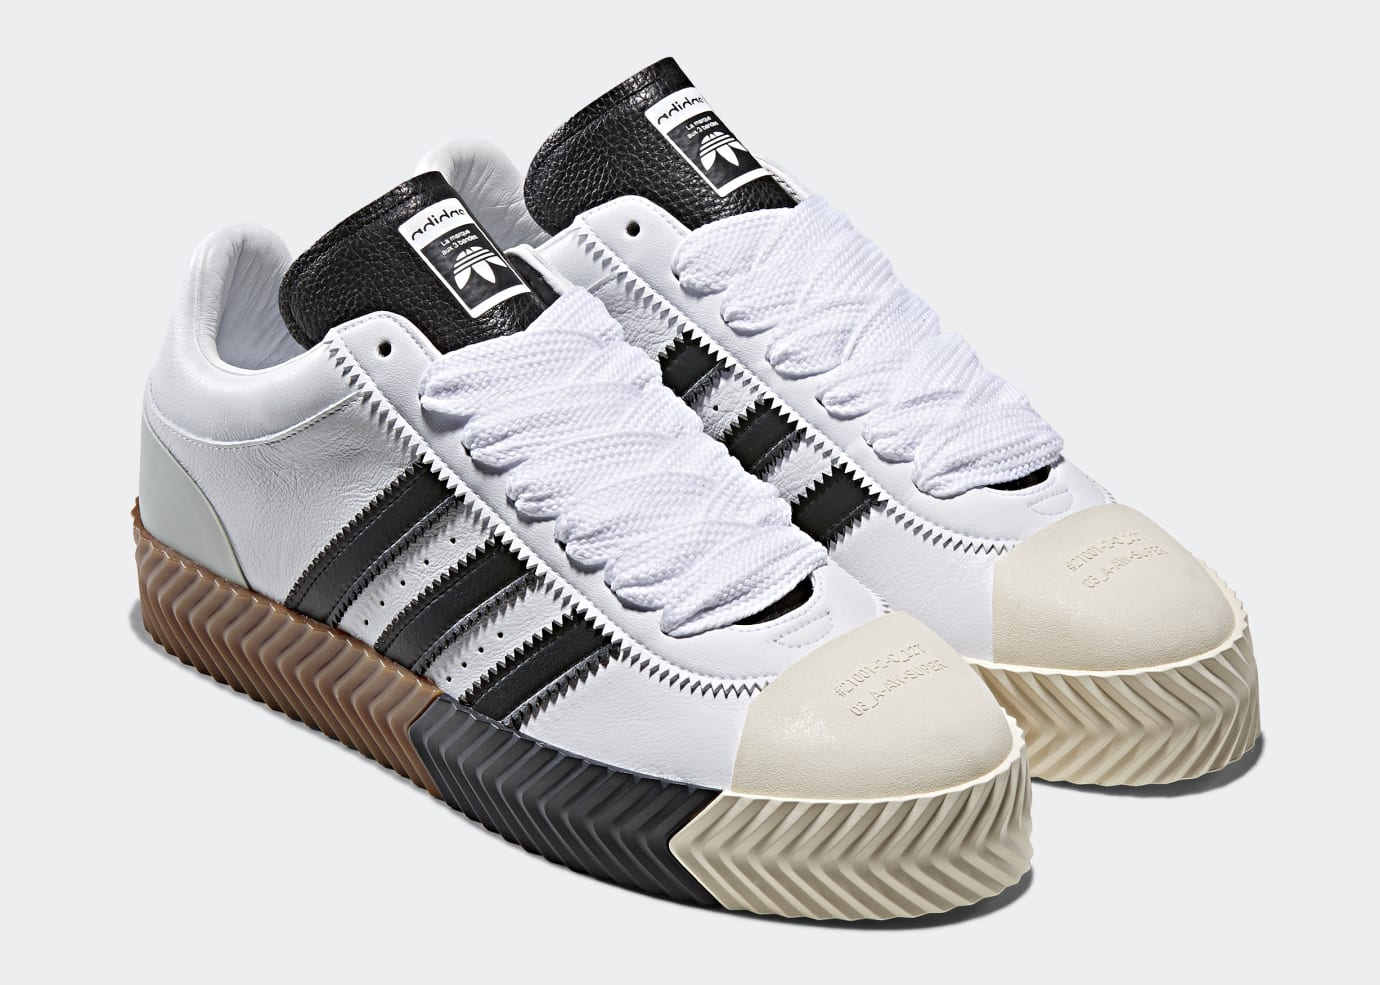 outlet store 70167 d26fb Alexander Wang x Adidas AW Skate Super White (Pair)